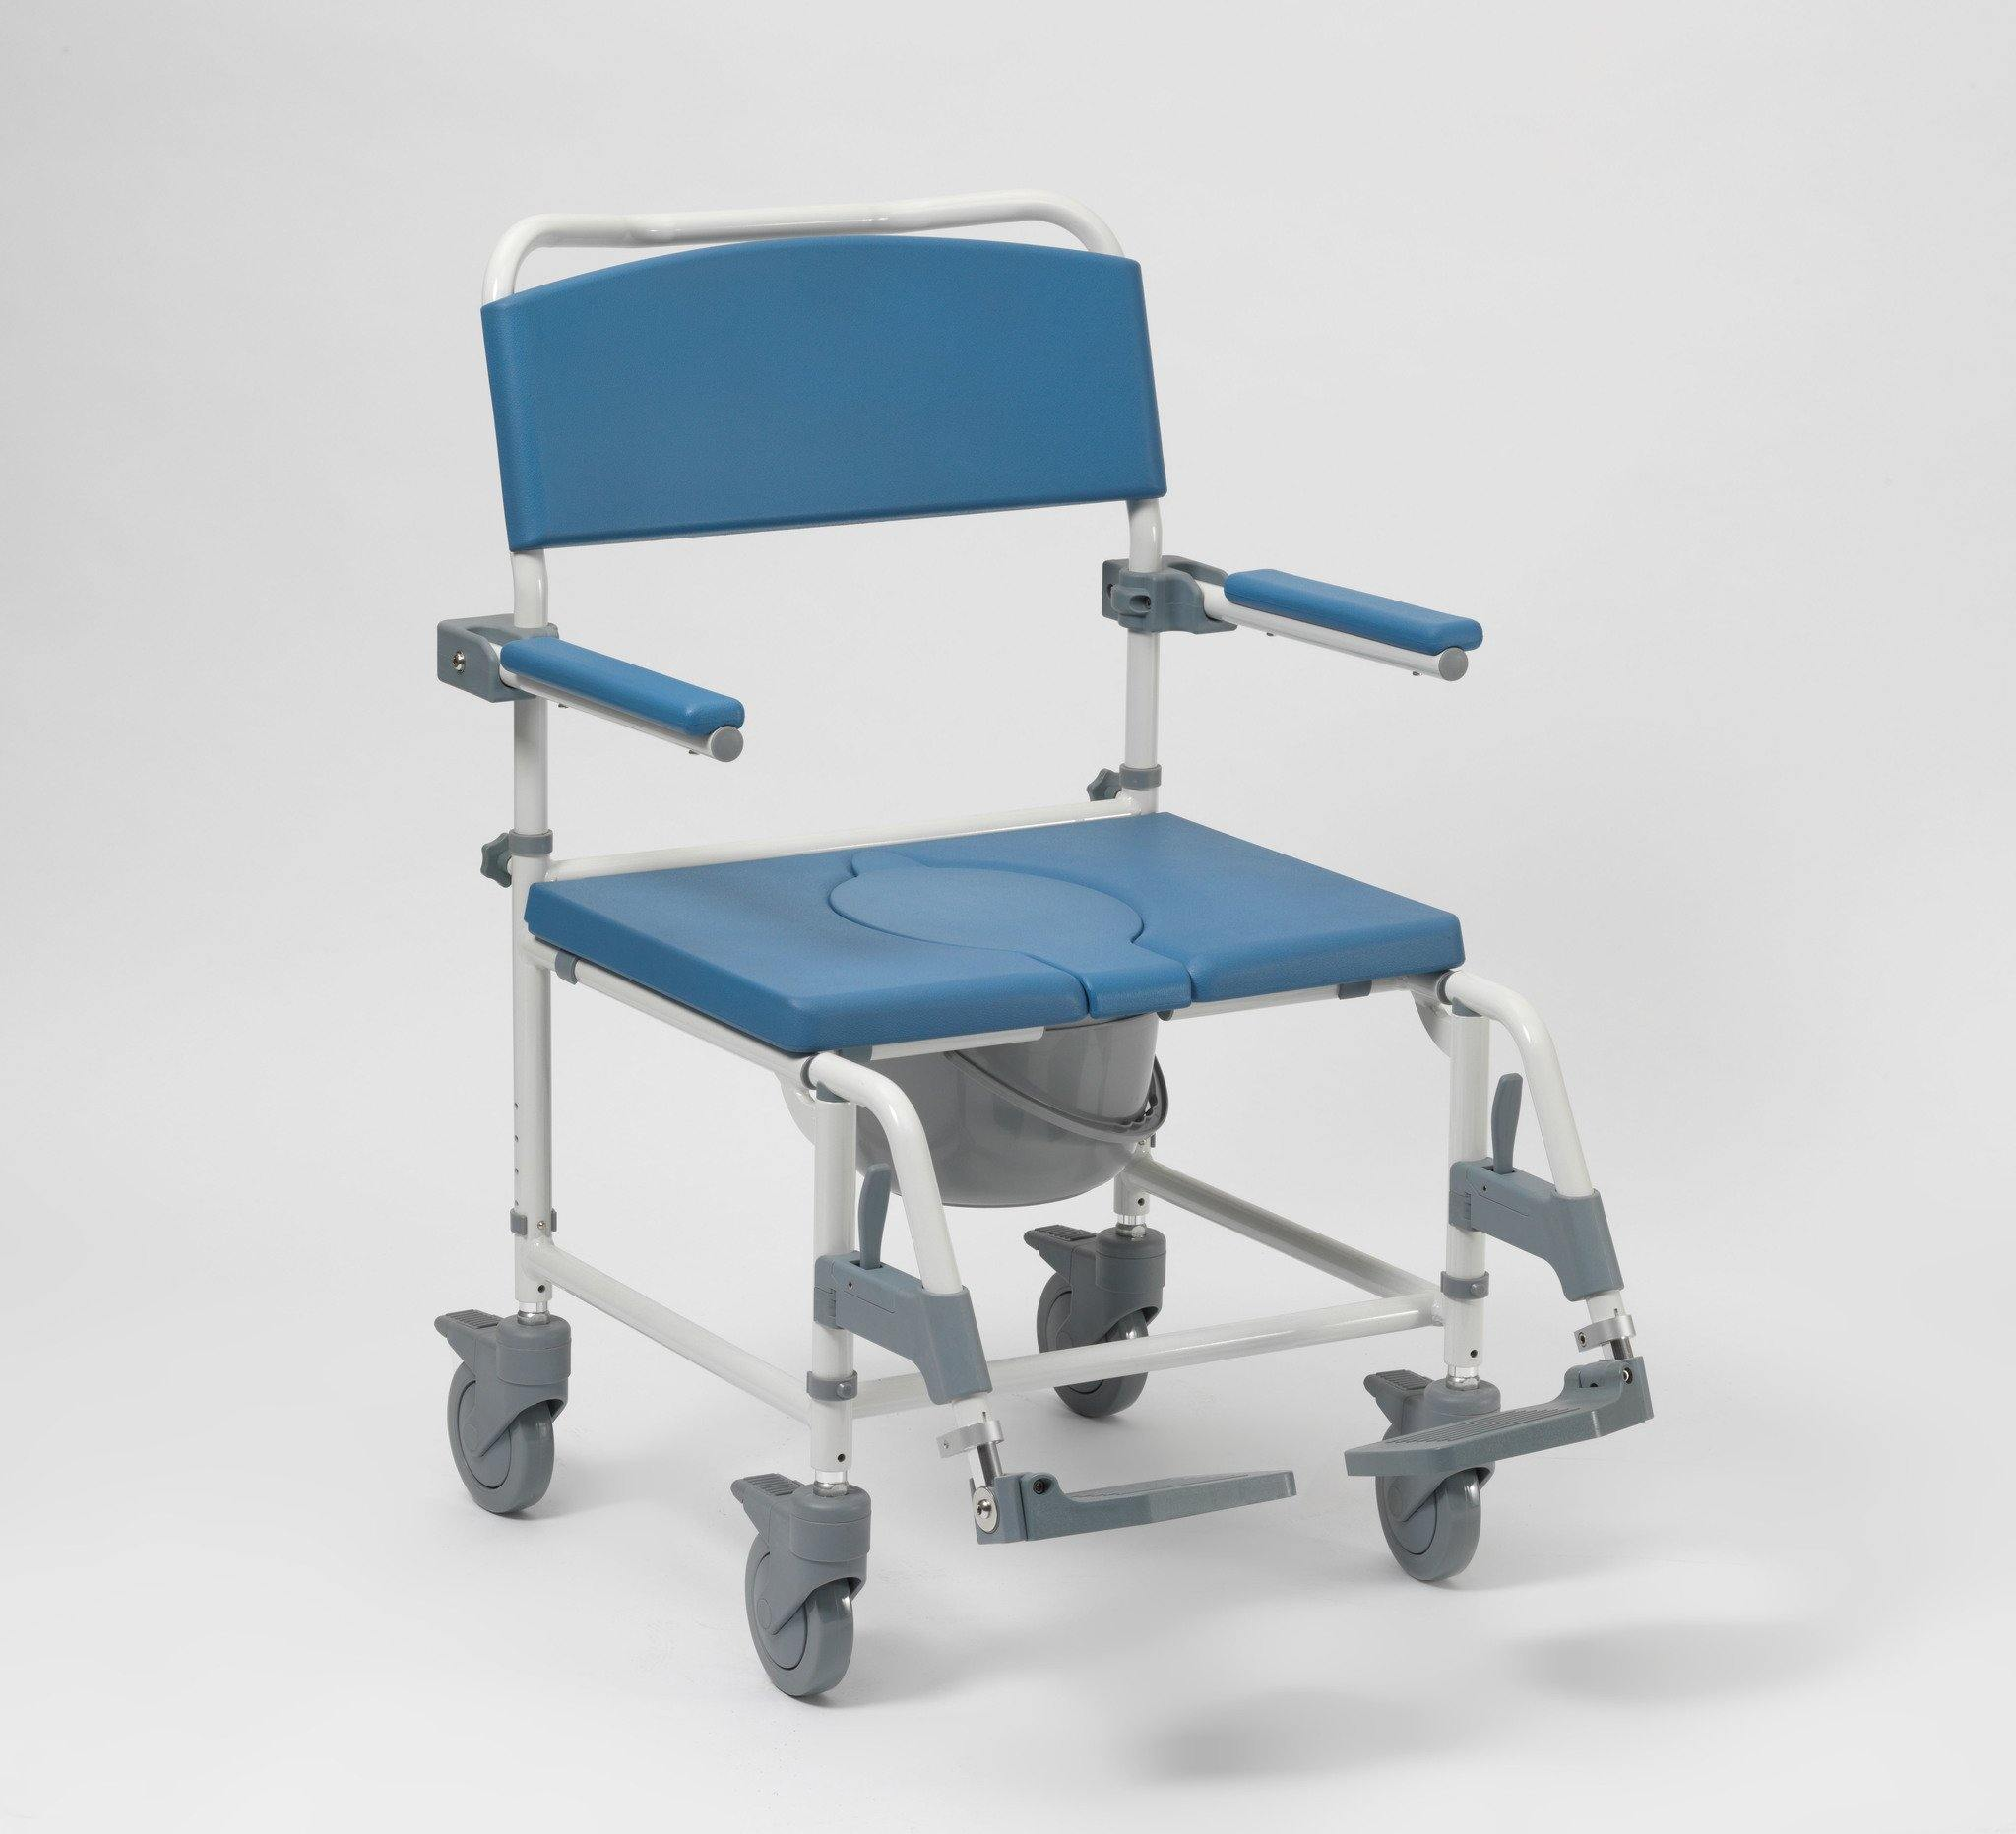 Aston Heavy Duty Aluminium Shower/Commode Chair 4 Brake Castors, Height Adjustable - Mobility2you - discount wholesale prices - from Drive DeVilbiss Healthcare